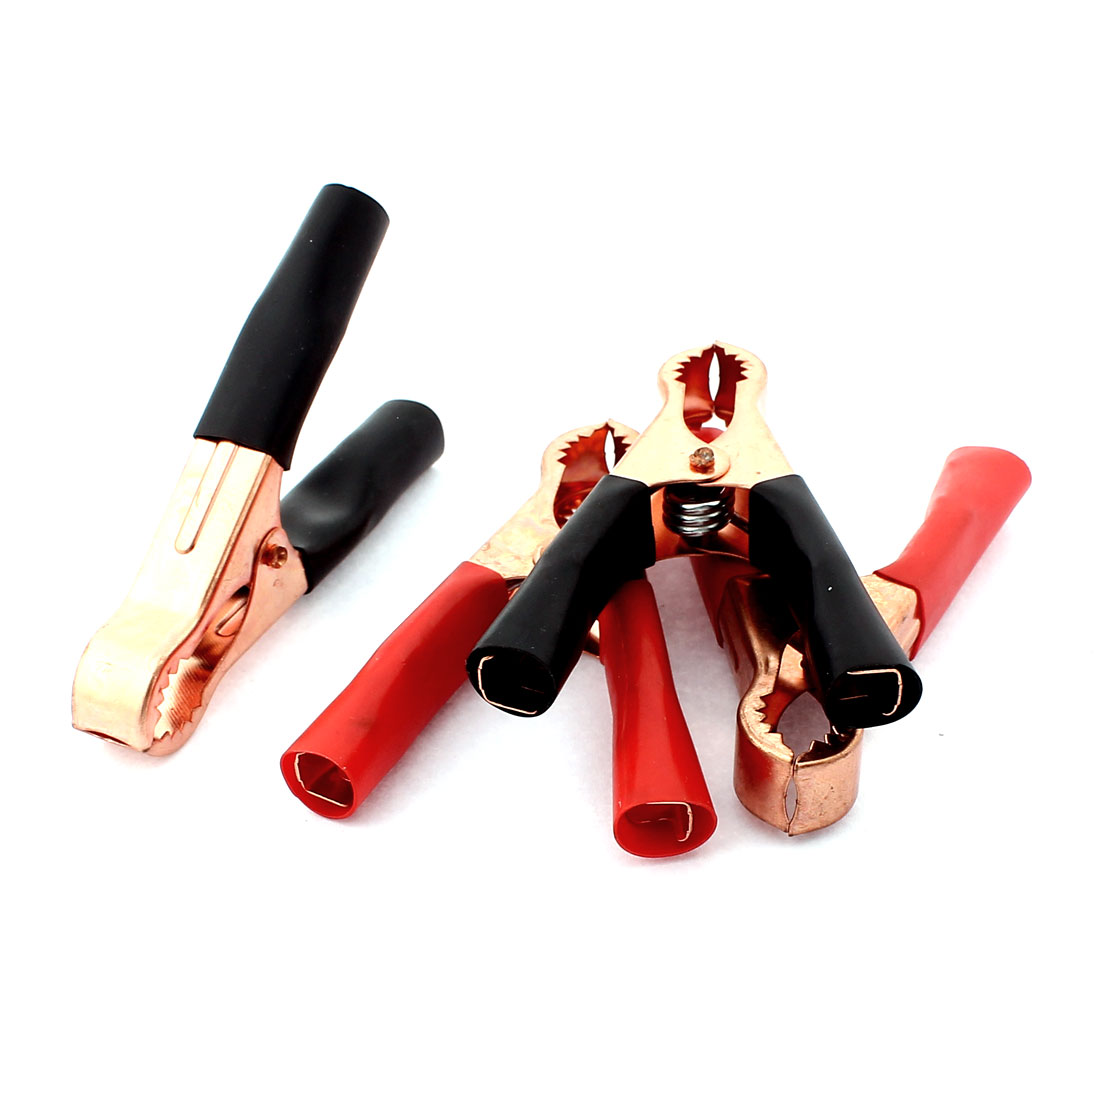 2 Pairs Copper Plated Insulated Car Battery Clips Alligator Clamps 50A Red Black